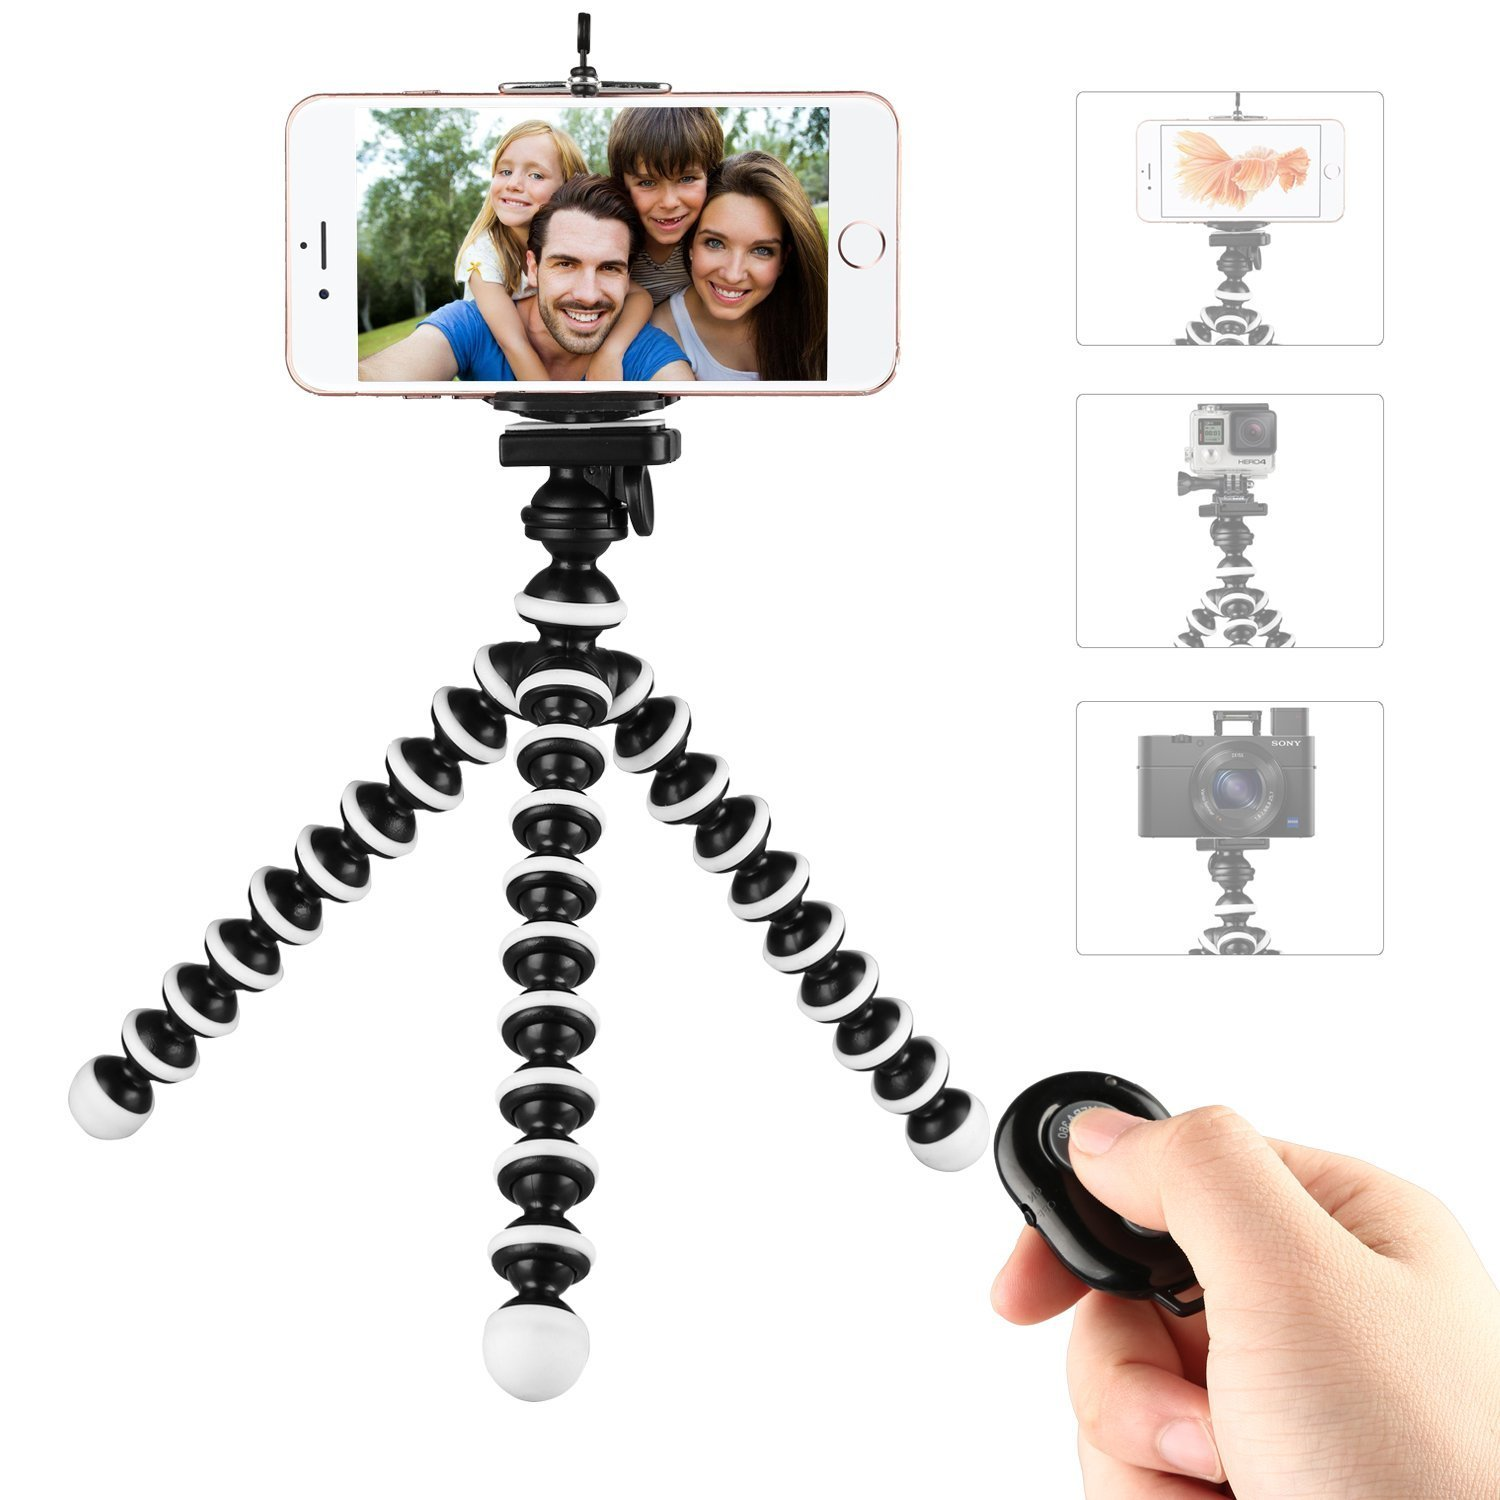 Phone Tripod,Portable and Flexible Adjustable Cell Phone Stand Holder with Remote and Universal Clip Compatible with iPhone Android Phone Compact Digital Camera Sports Camera GoPro by WAAO